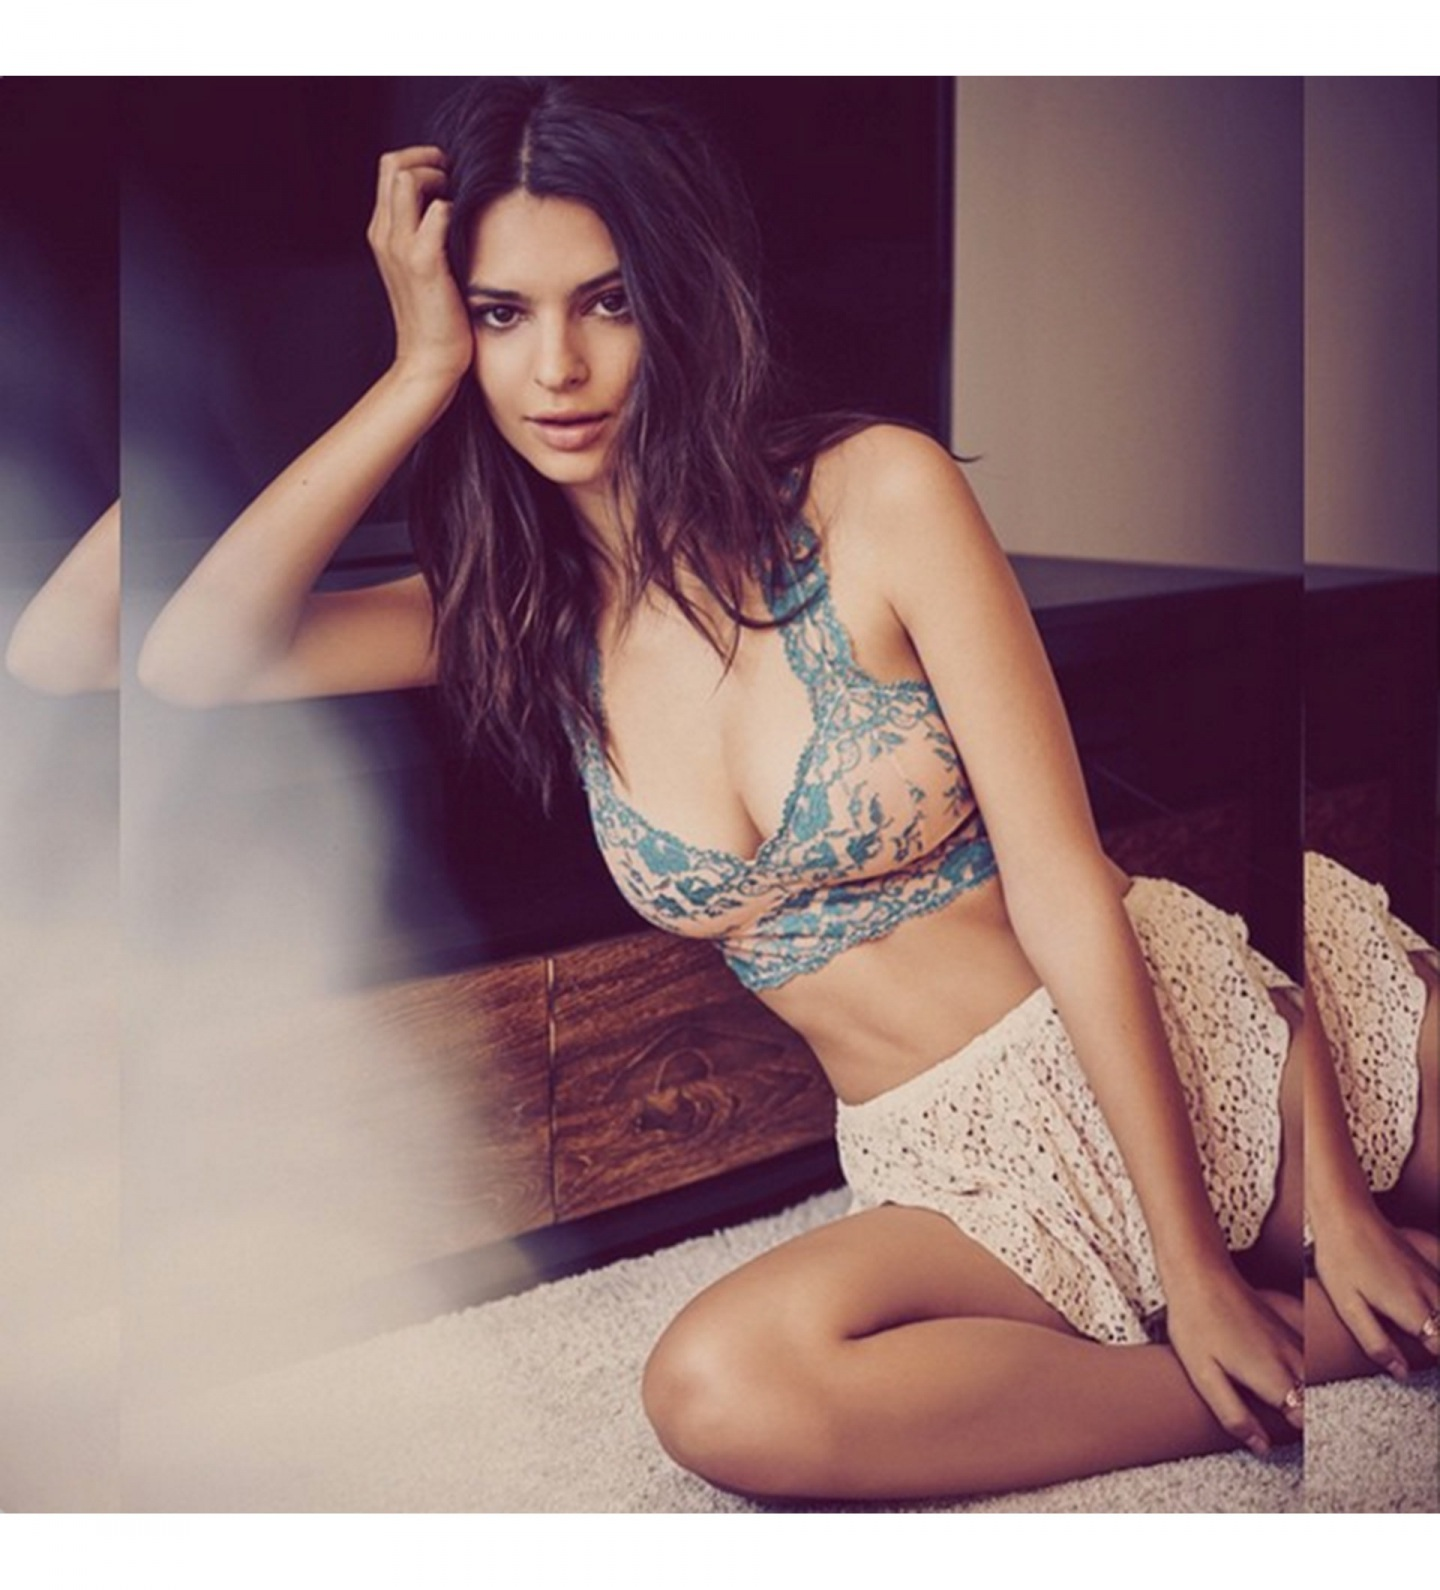 Gq Emily Ratajkowski Hottest Instagram Moments Instagram